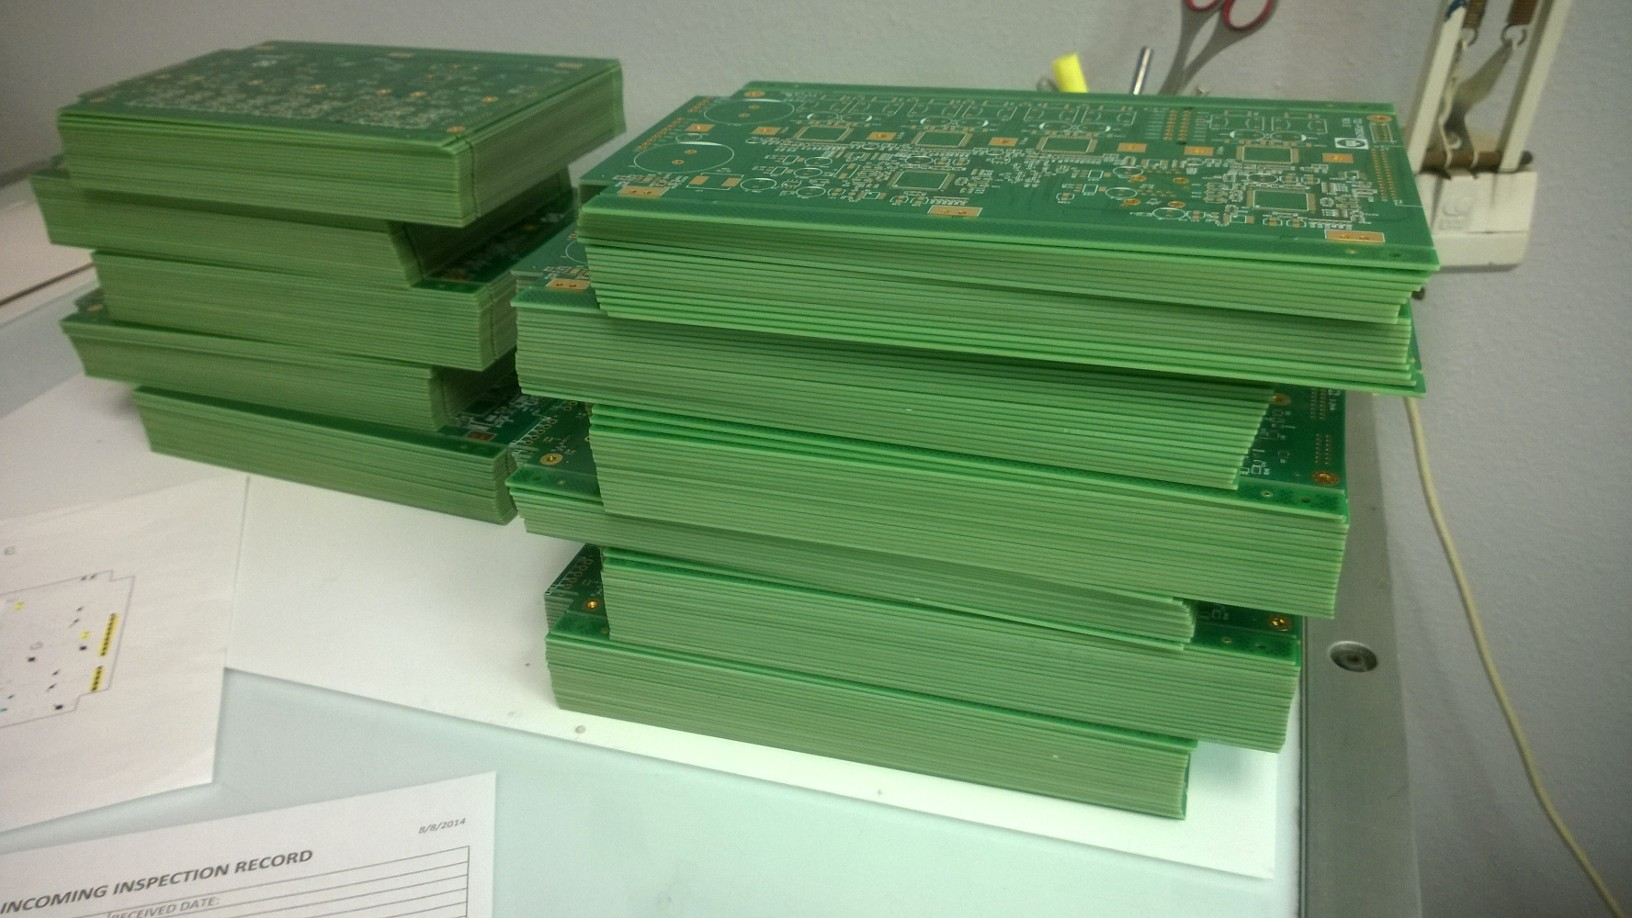 For the OEM Buyer new to PCBs – Part 1 of a 2 part Blog